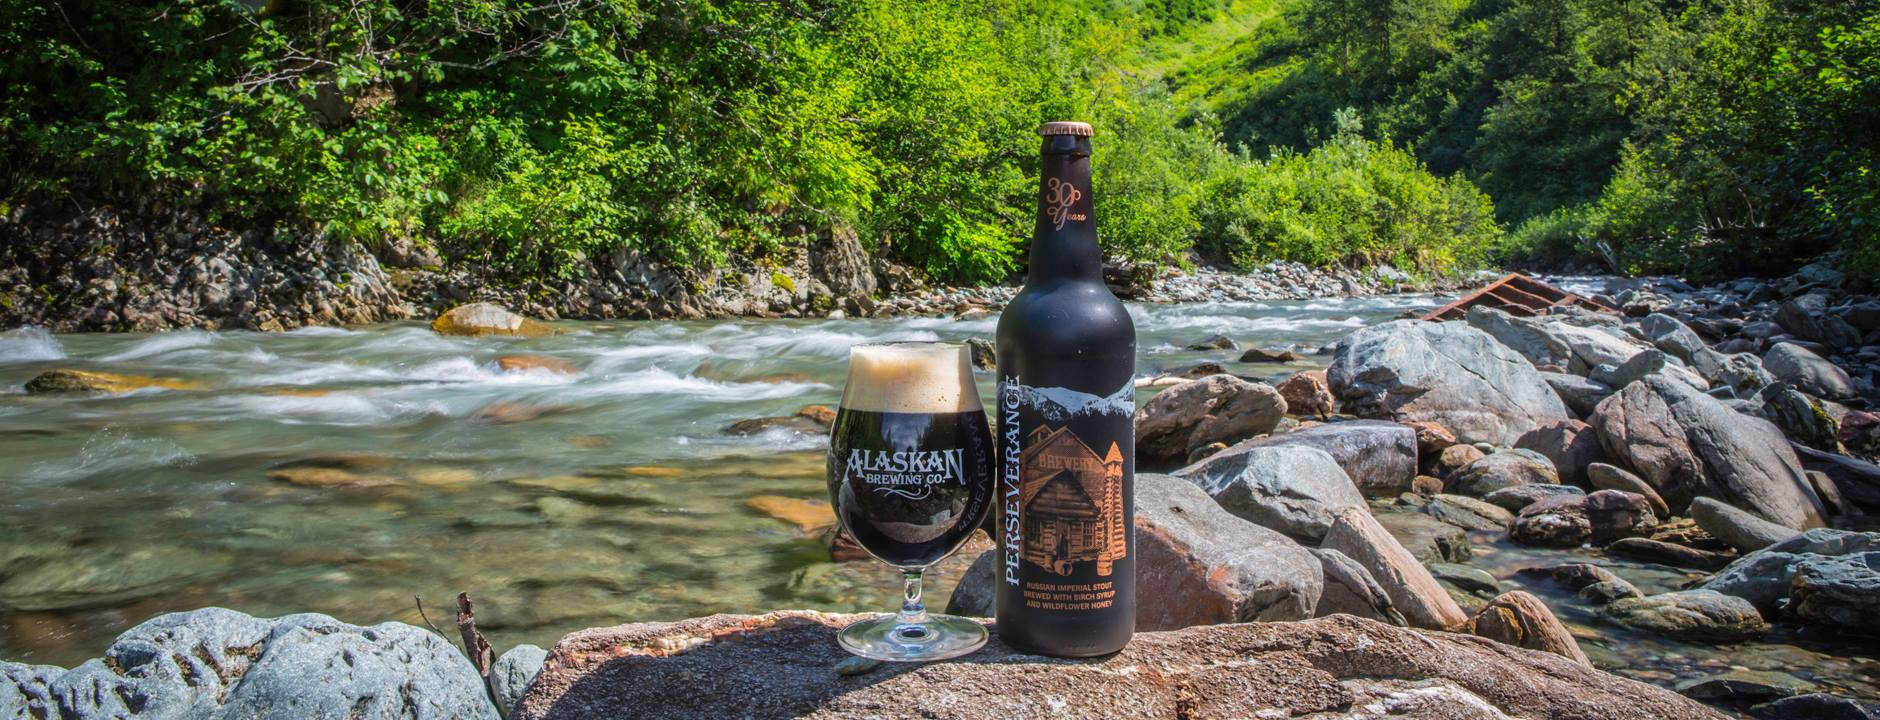 Alaskan Brewing's 30th Anniversary beer, Perseverance Russian Imperial Stout. (image courtesy of Alaskan Brewing)